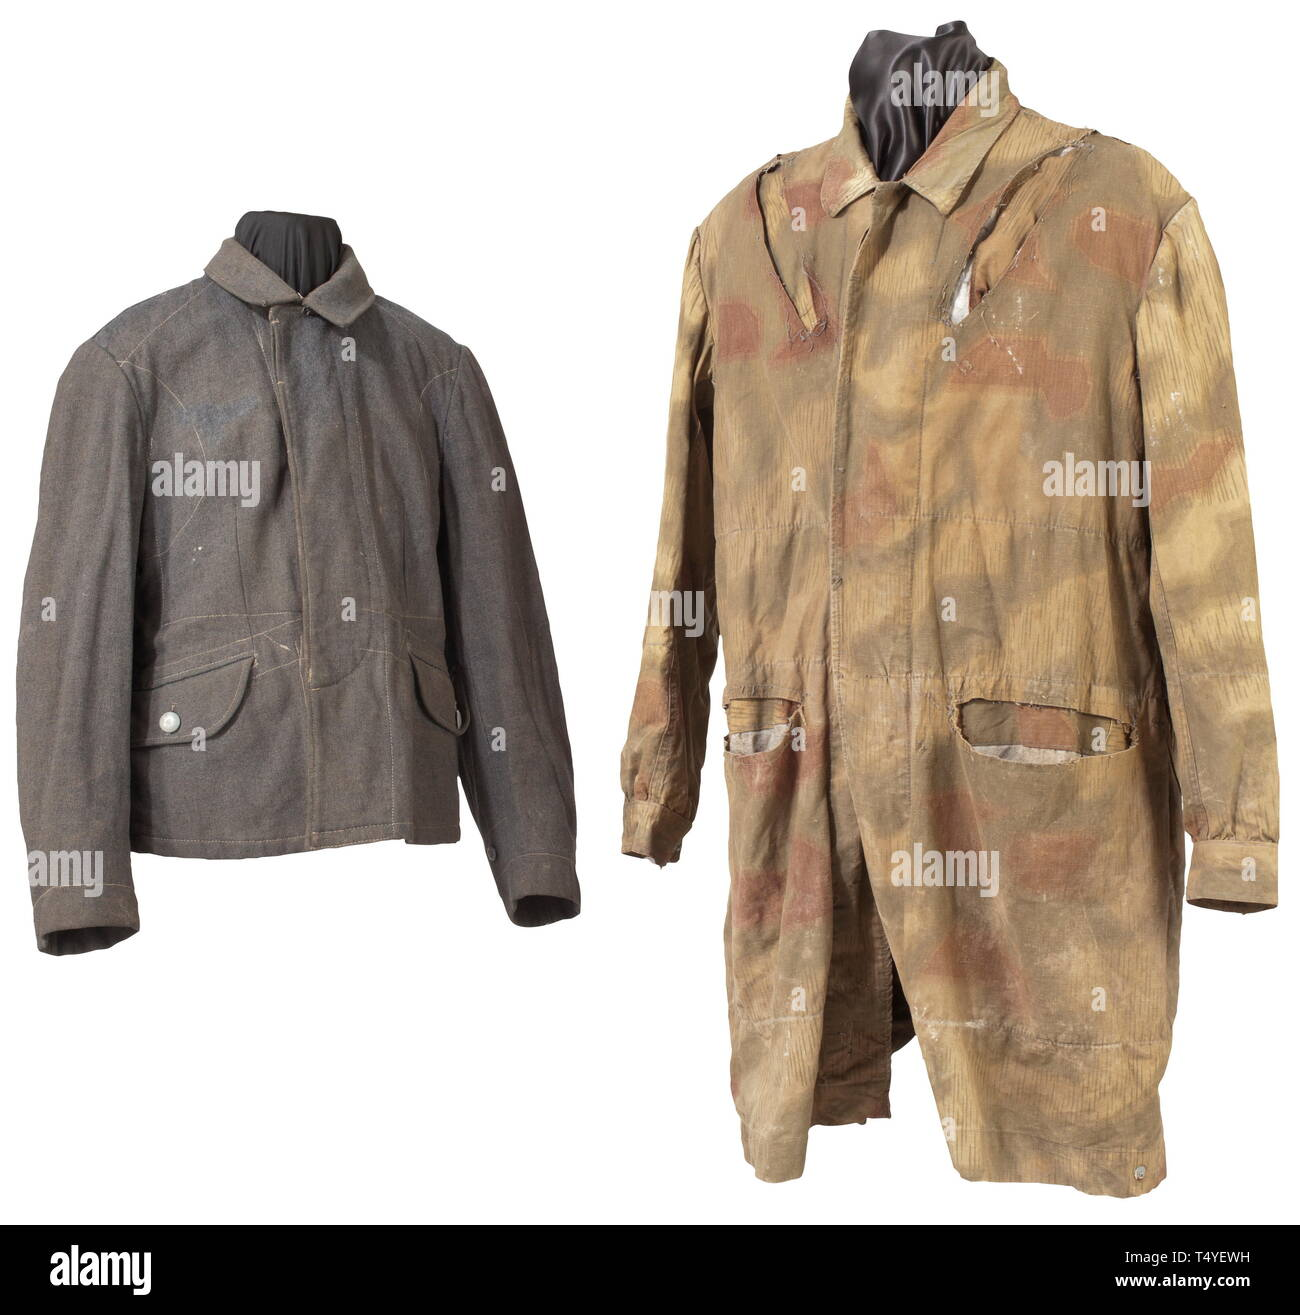 42dbc32fbe299a A paratrooper's jump smock, a so-called 'Knochensack' in 'Sumpftarn'